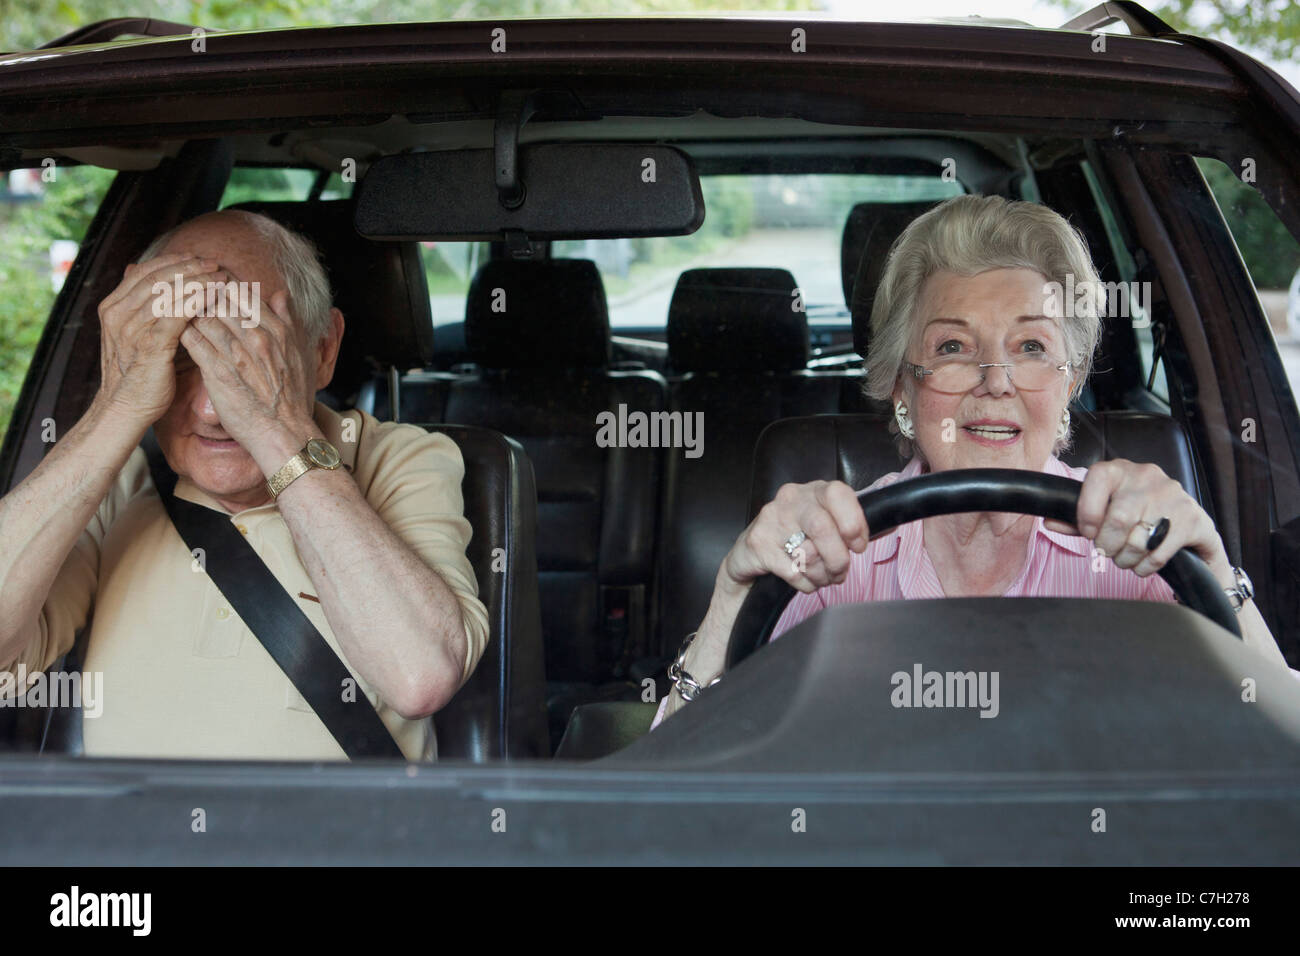 Woman has trouble driving while man in passenger seat despairs - Stock Image